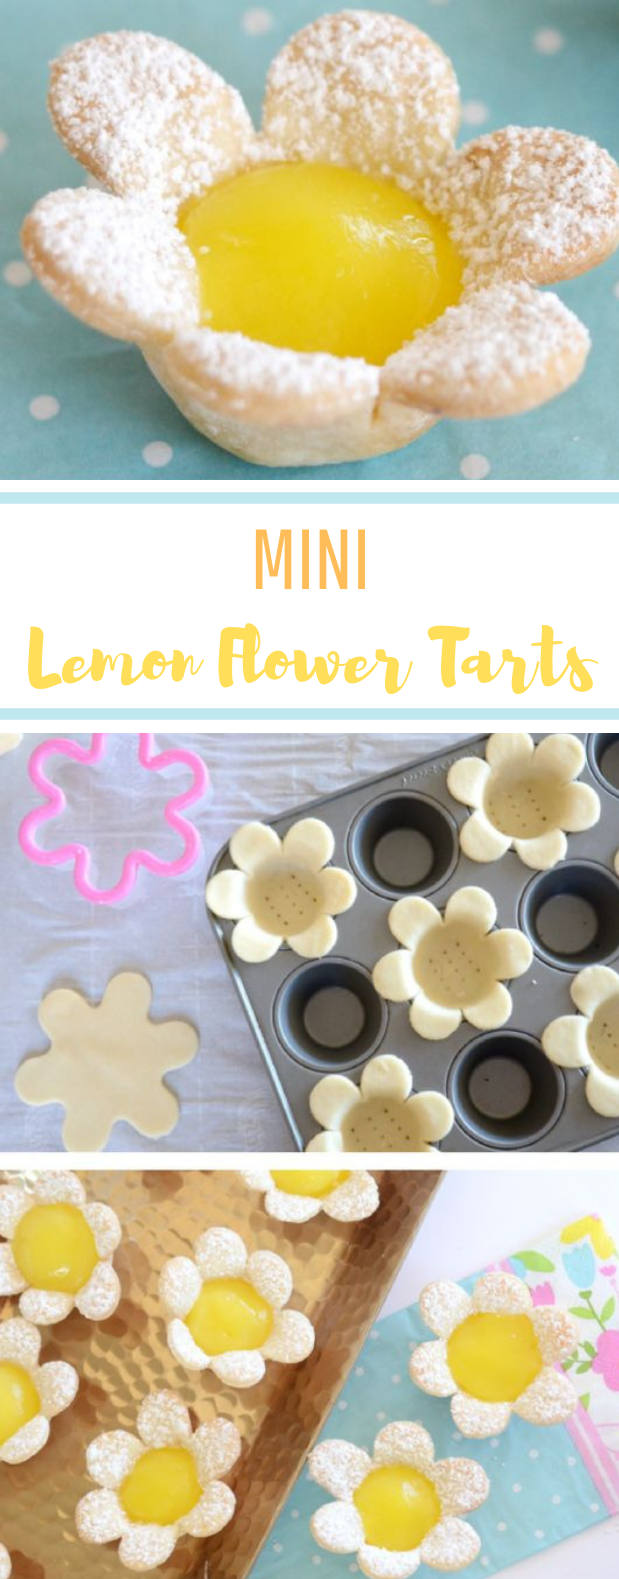 Mini Lemon Flower Tarts #easyrecipe #desserts